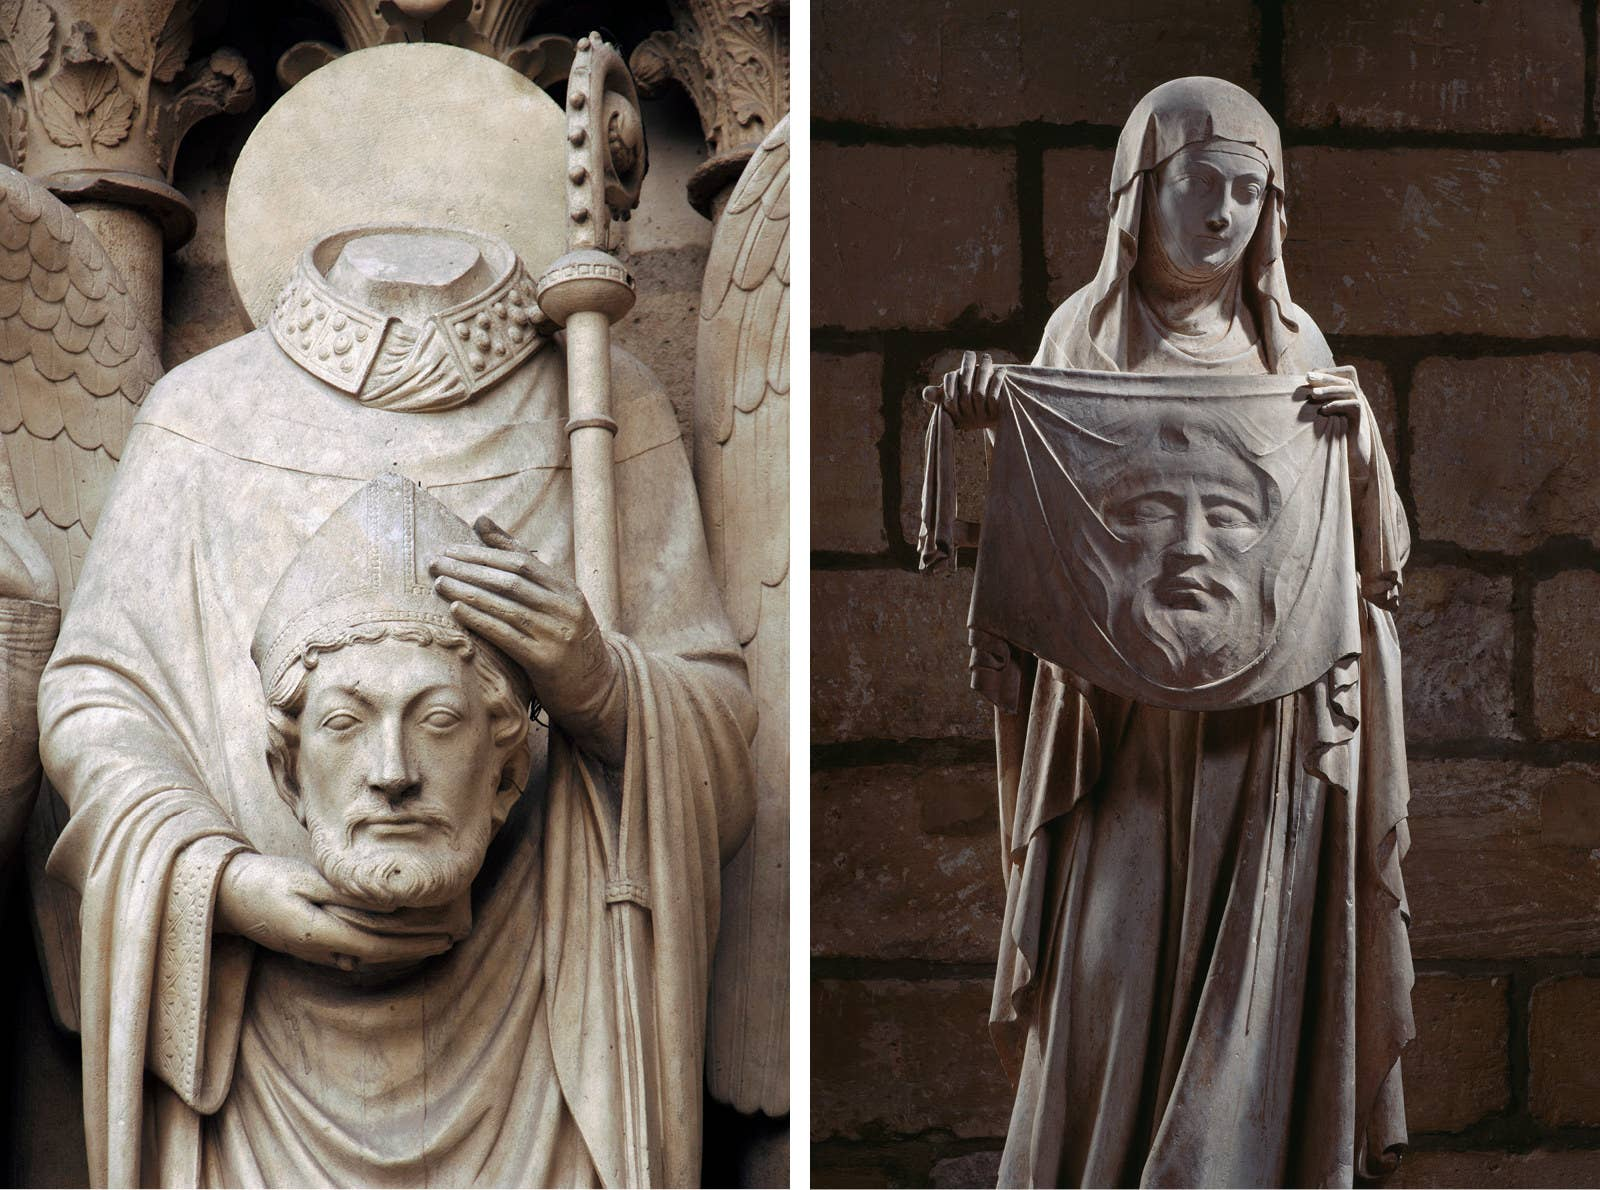 """The exterior of the cathedral is adorned with sculptures illustrating biblical stories, known as the """"poor people's book,"""" as, historically, the majority of parishioners could not read. Left: Christian martyr Saint Denis holding his head; Right: Statue of Saint Veronique holding the shroud of Christ"""